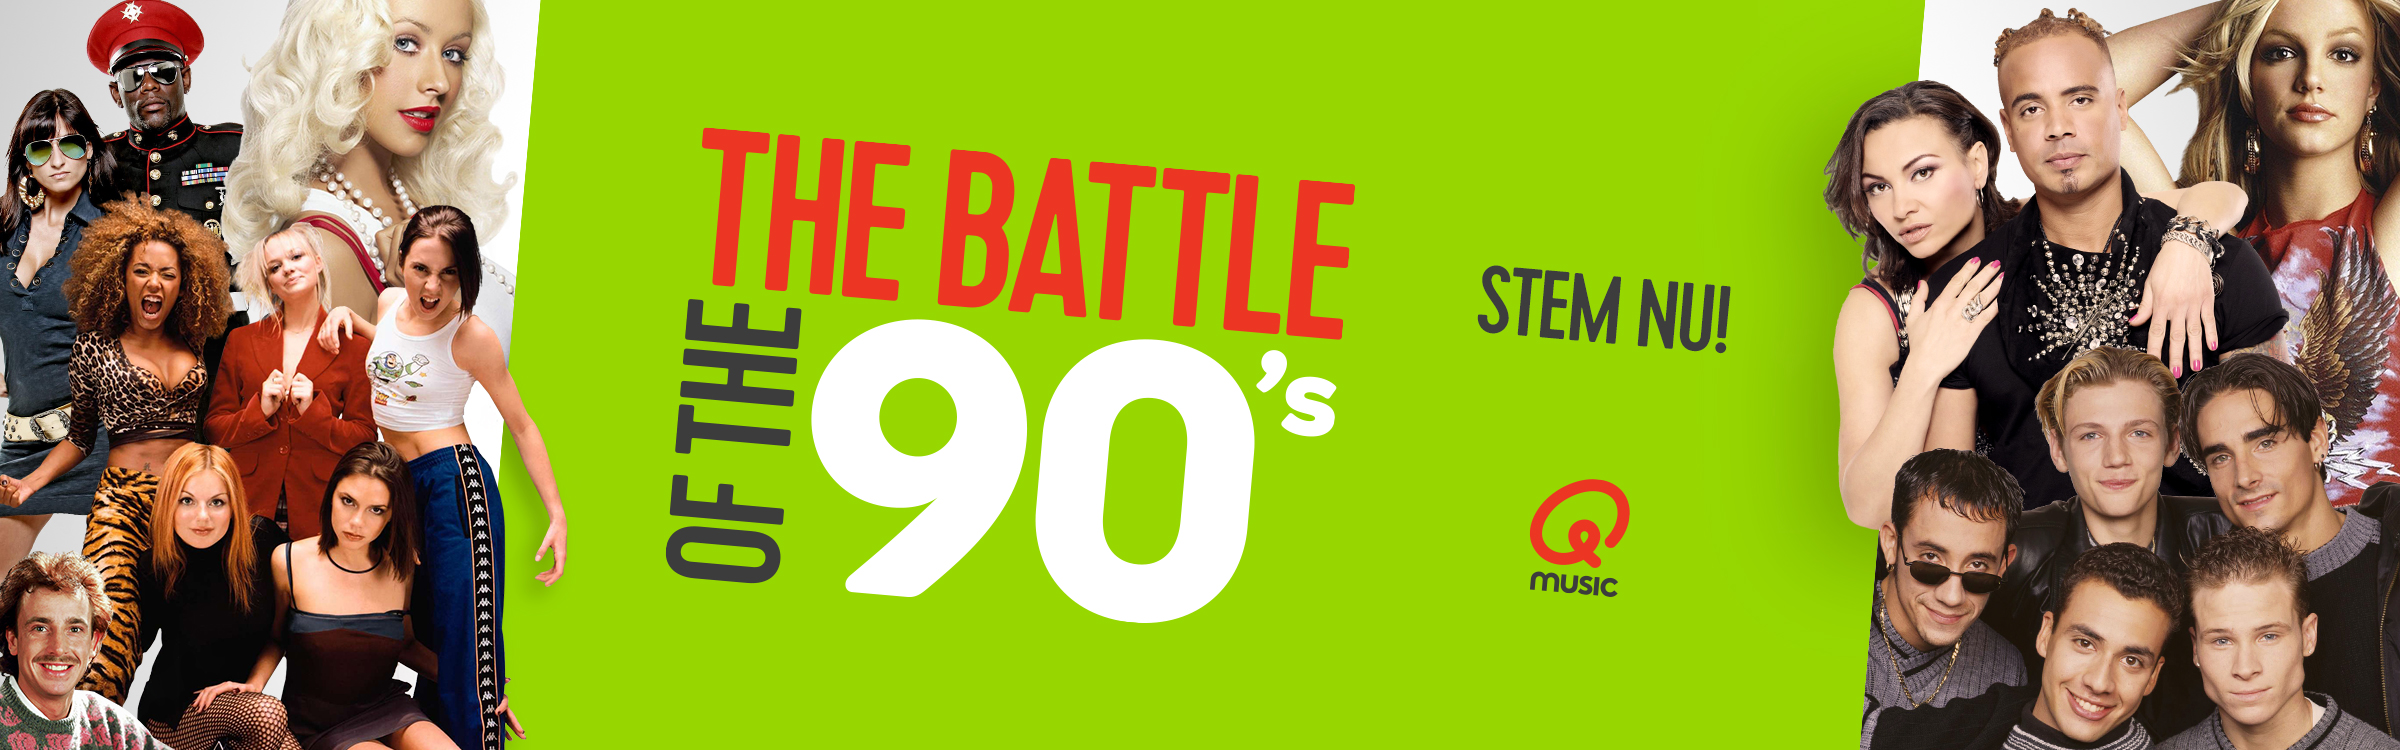 Qmusic actionheader top500 90s battles